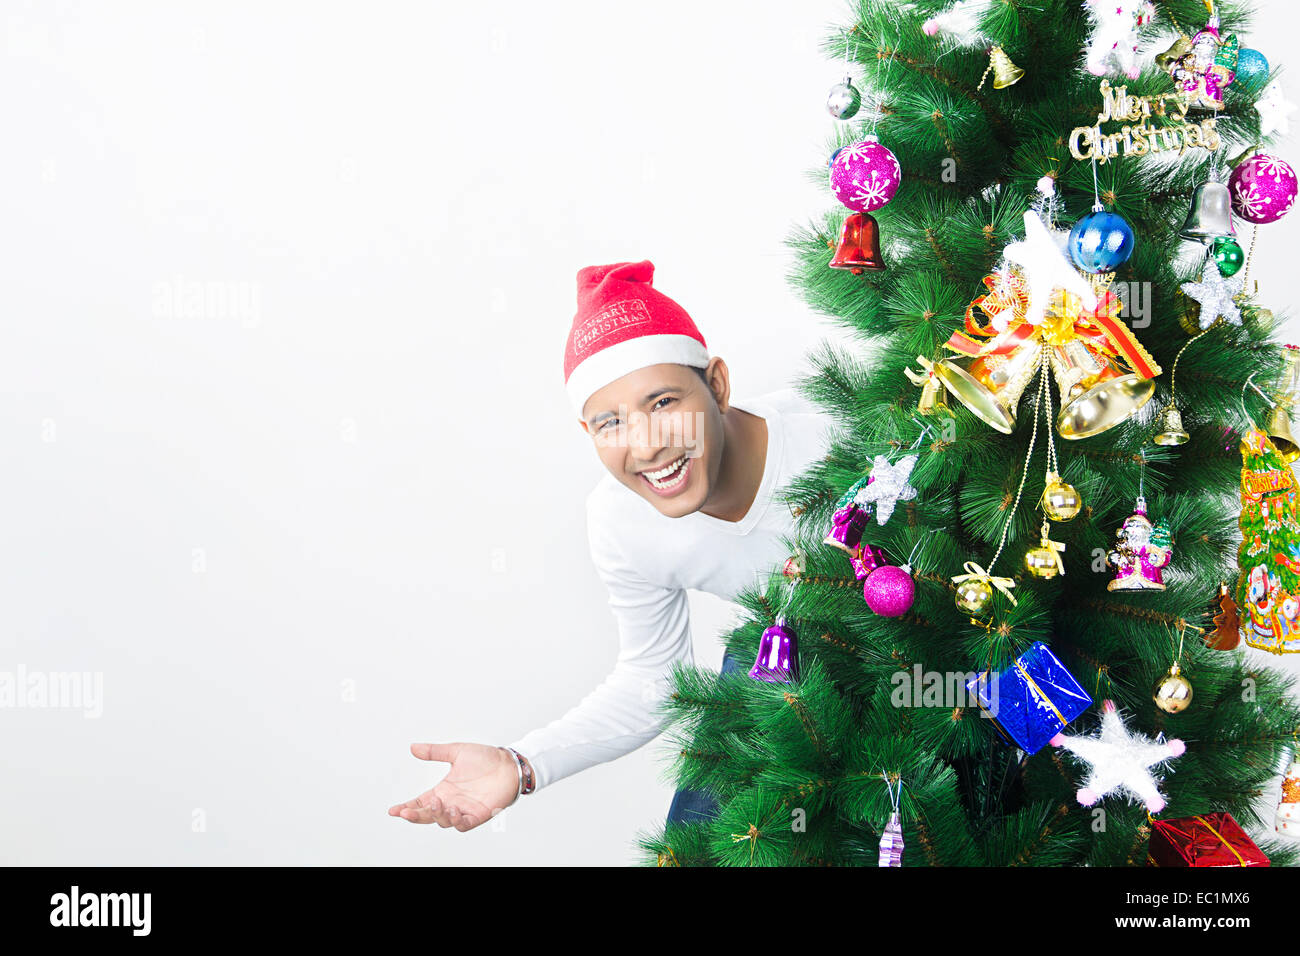 one indian man Christmas Festival enjoy Stock Photo: 76255710 - Alamy